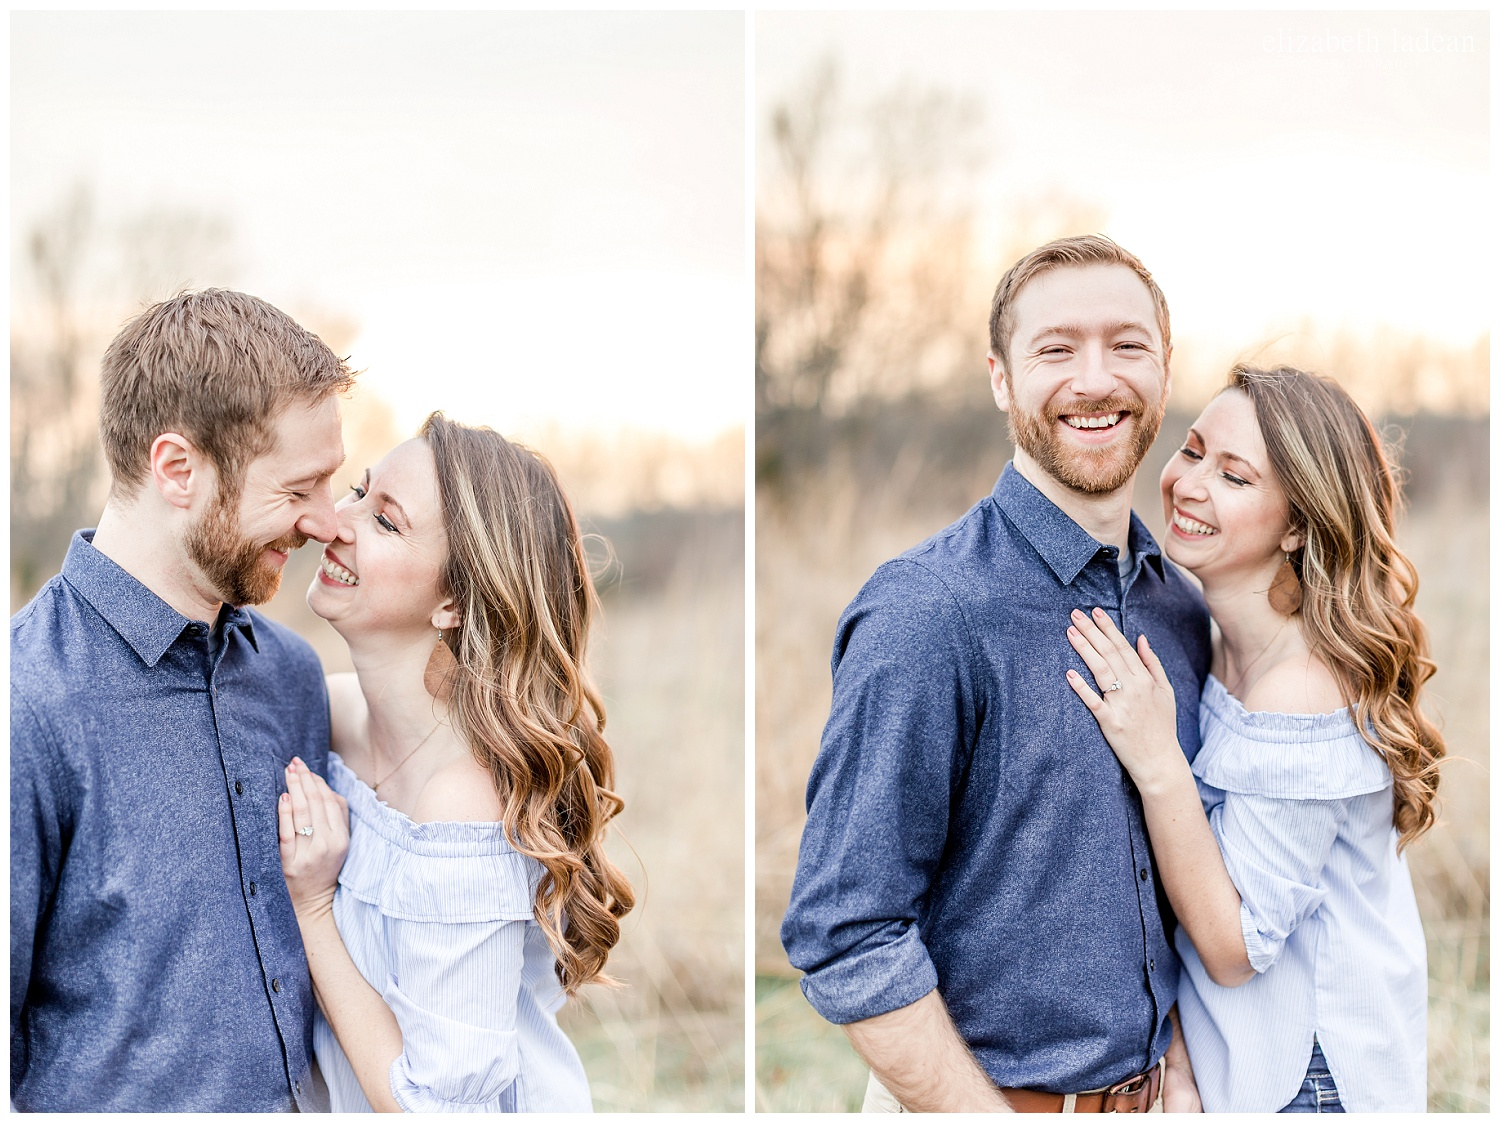 Kansas-City-Engagement-Photographer-K+D2018-elizabeth-ladean-photography-photo-_6632.jpg